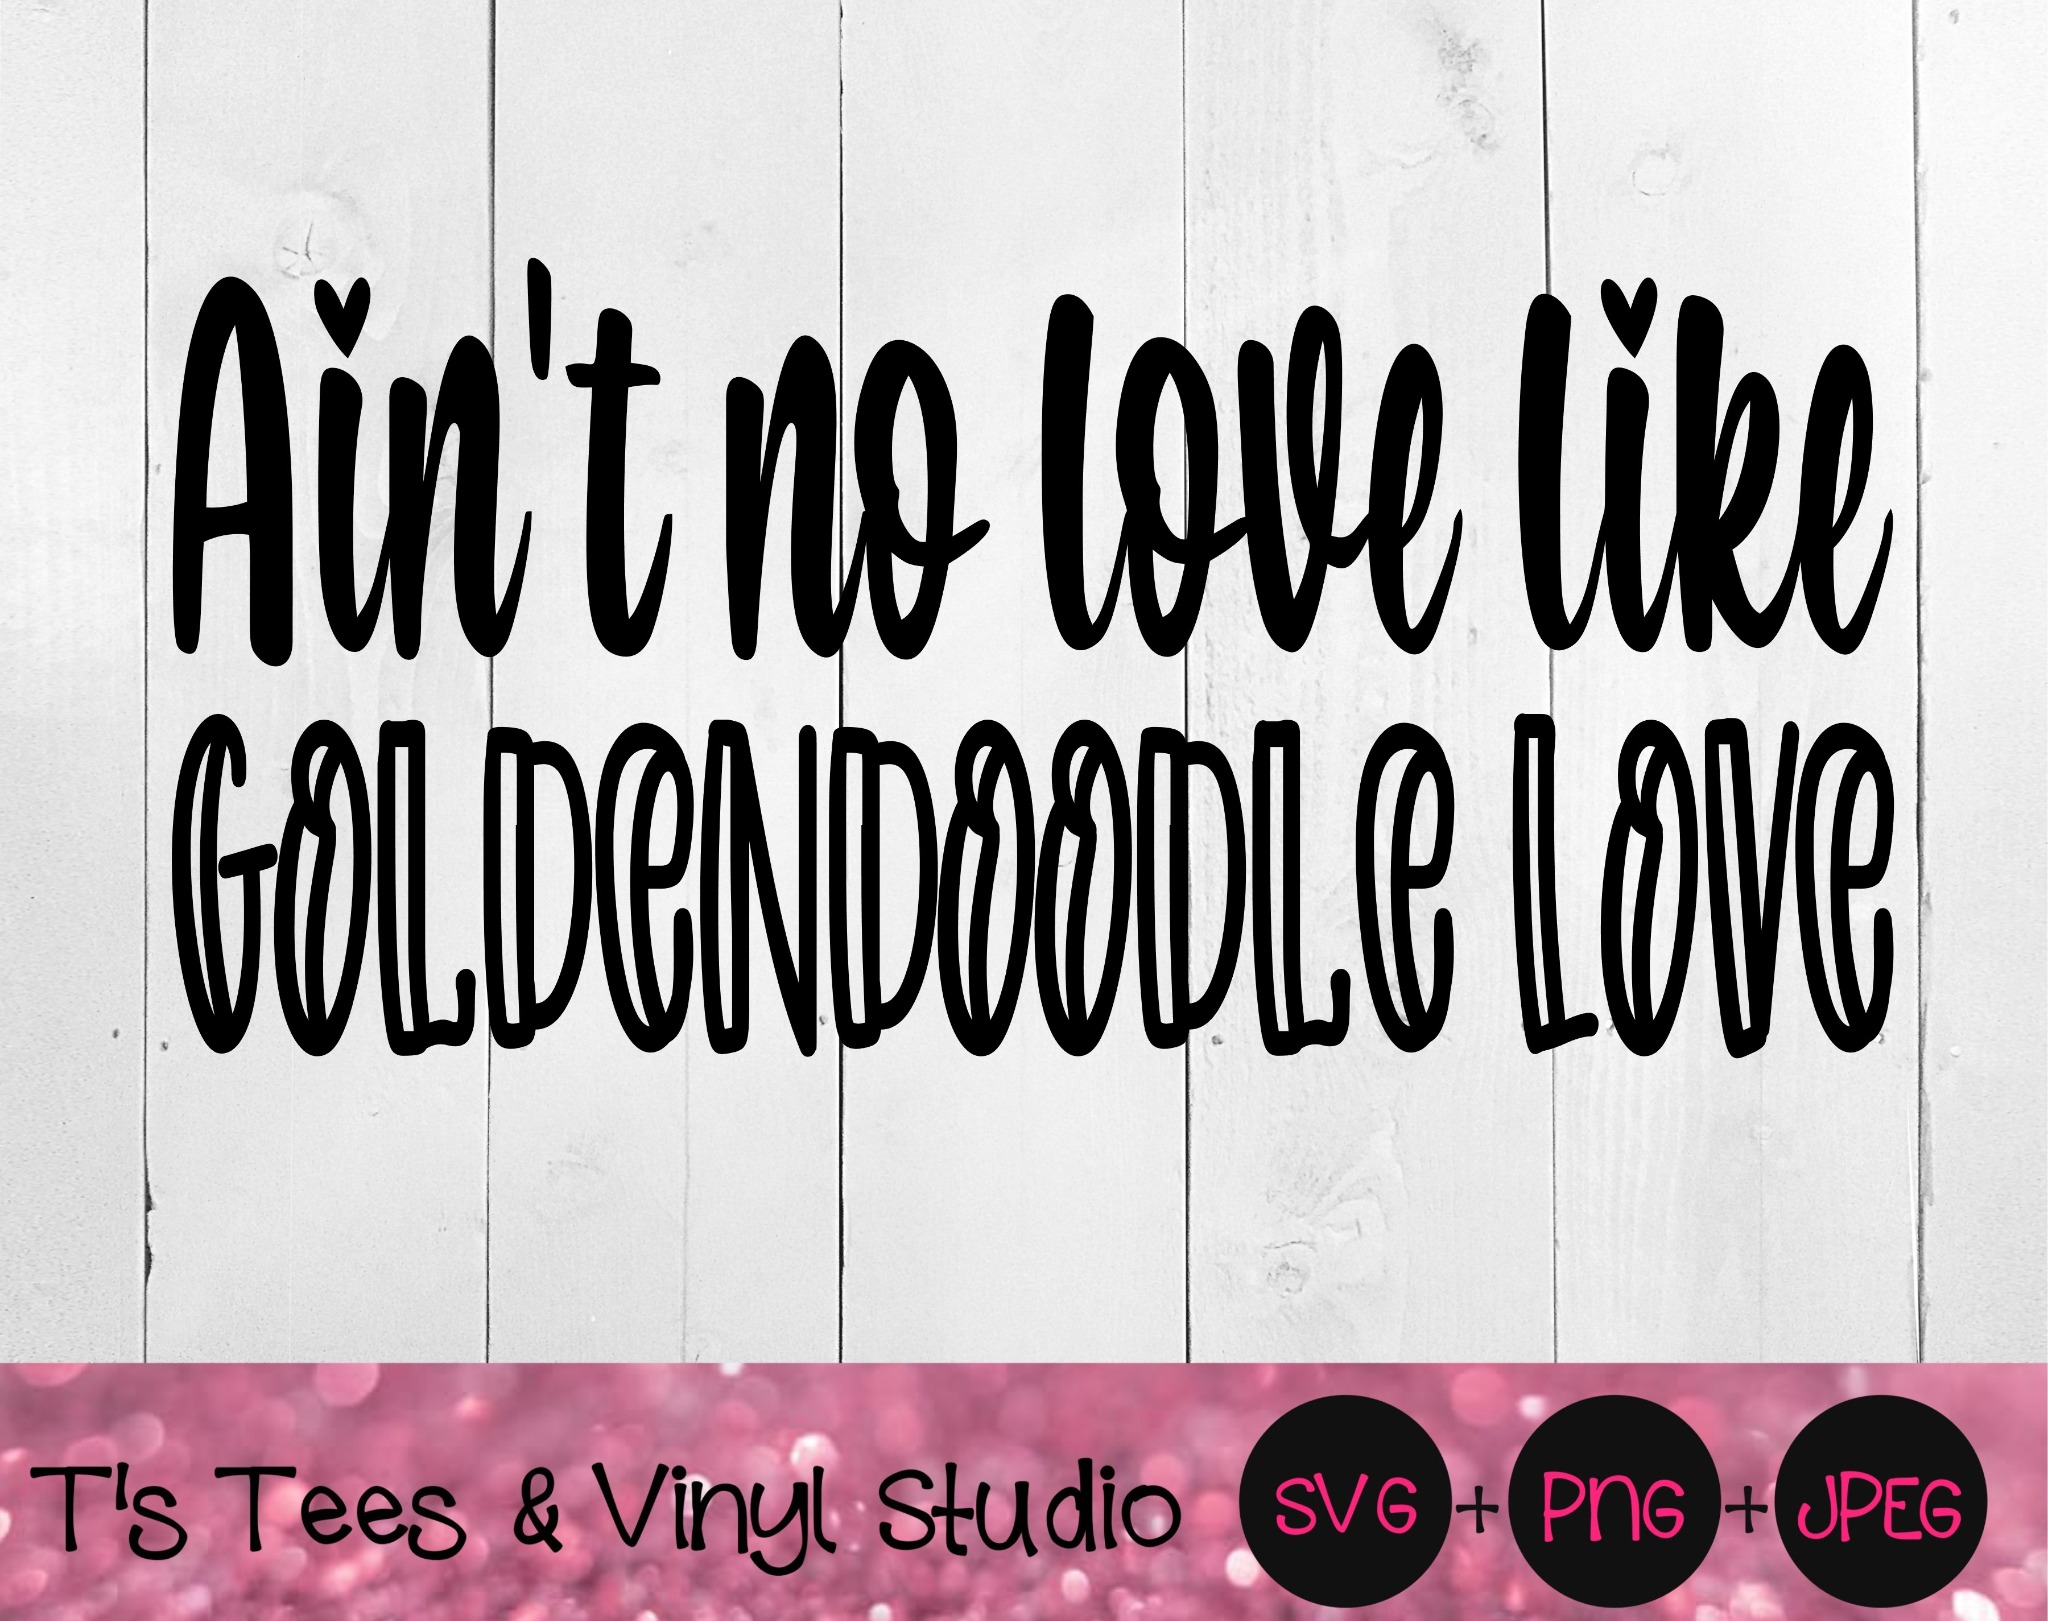 Ain't No Love Like Goldendoodle Love Svg, Poodle Svg, Golden Retriever, Love Svg, Dog Love Svg, Poo